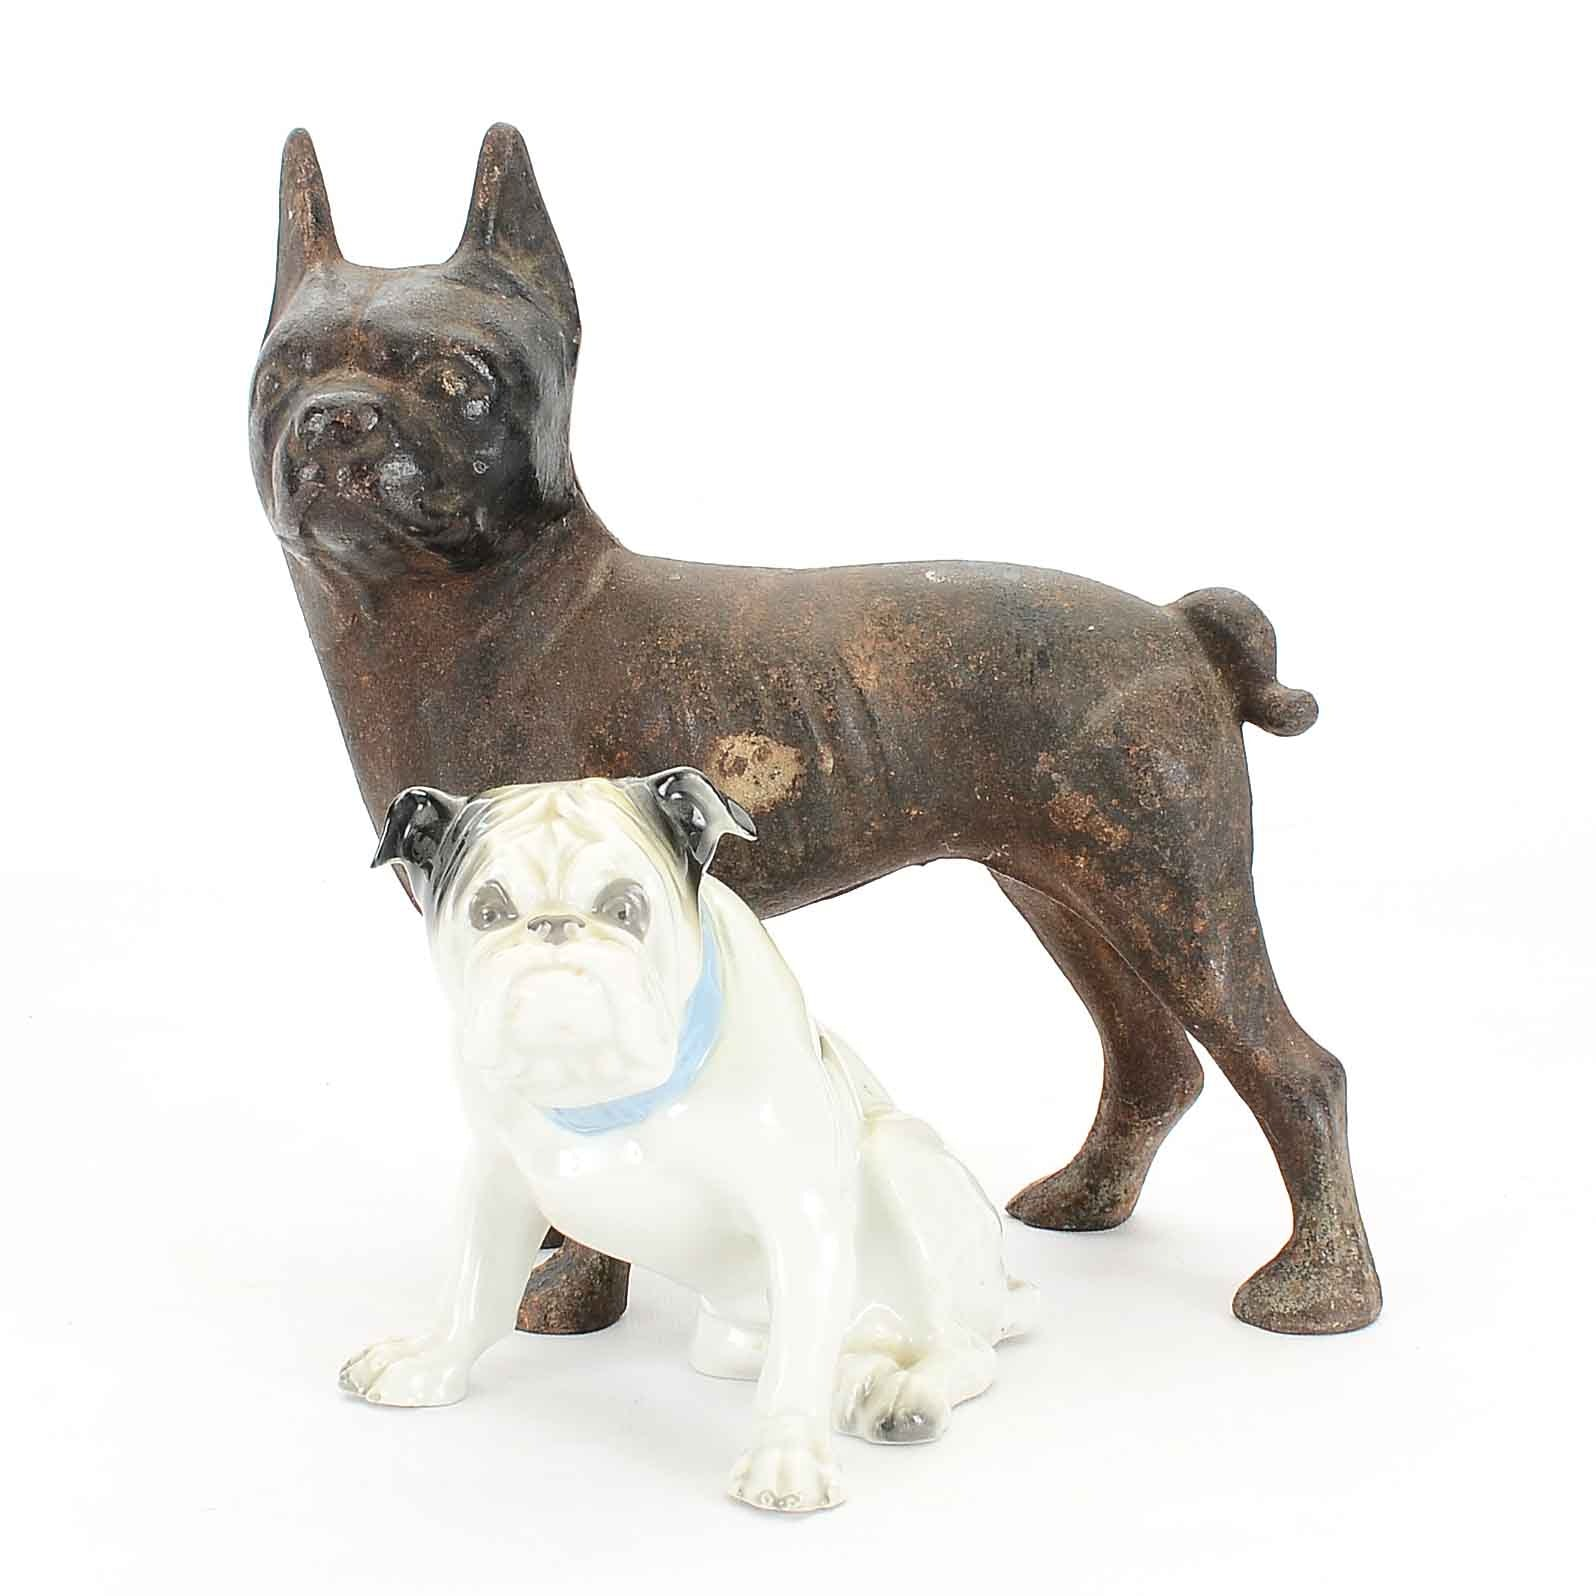 Decorative Ceramic and Metal Dog Figurines